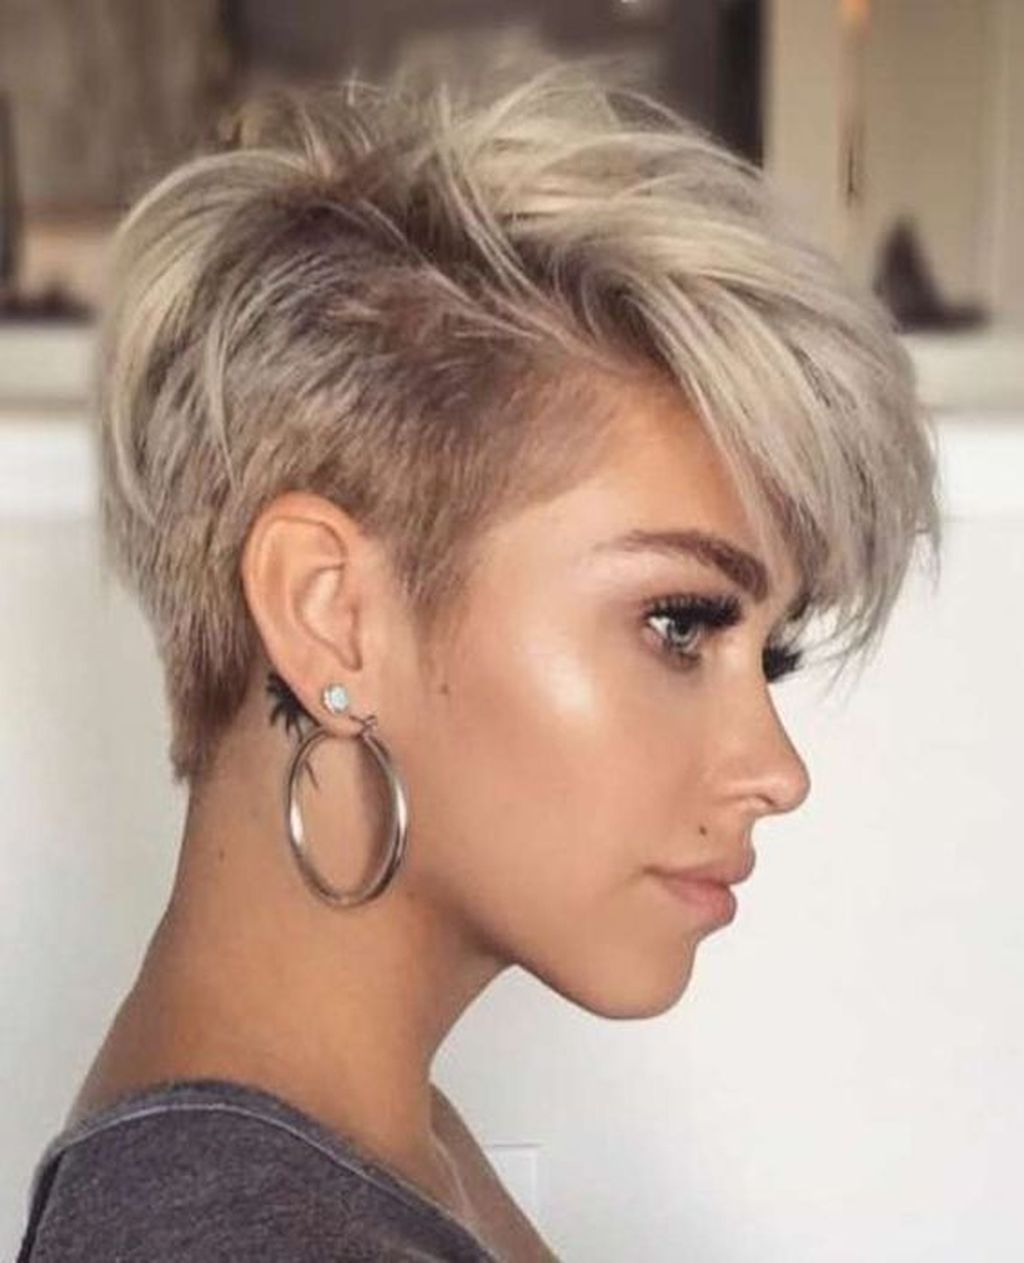 36+ Pictures of short haircuts for women ideas information